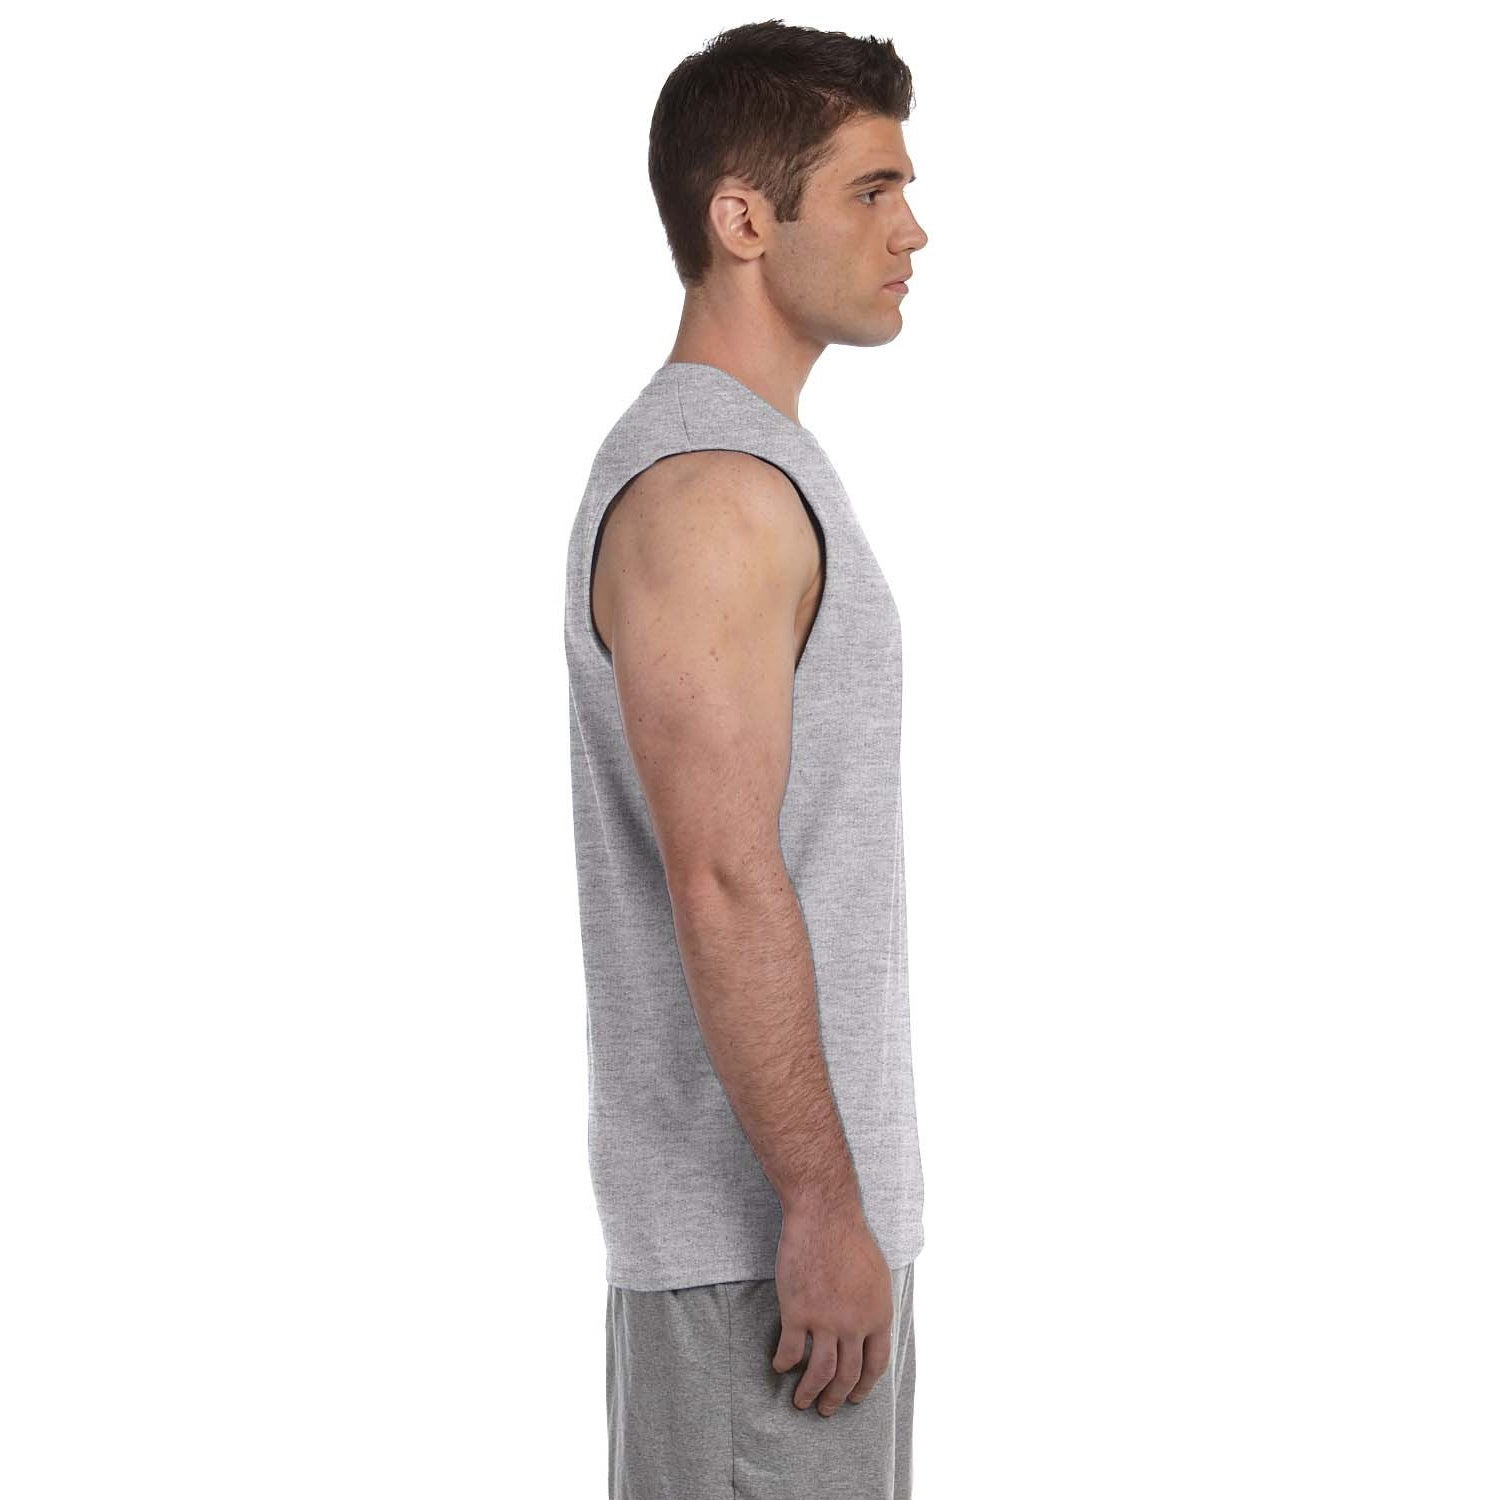 fd1355432a6c83 Shop Gildan Men s Ultra Cotton Sleeveless T-shirt - On Sale - Free Shipping  On Orders Over  45 - Overstock - 8988626